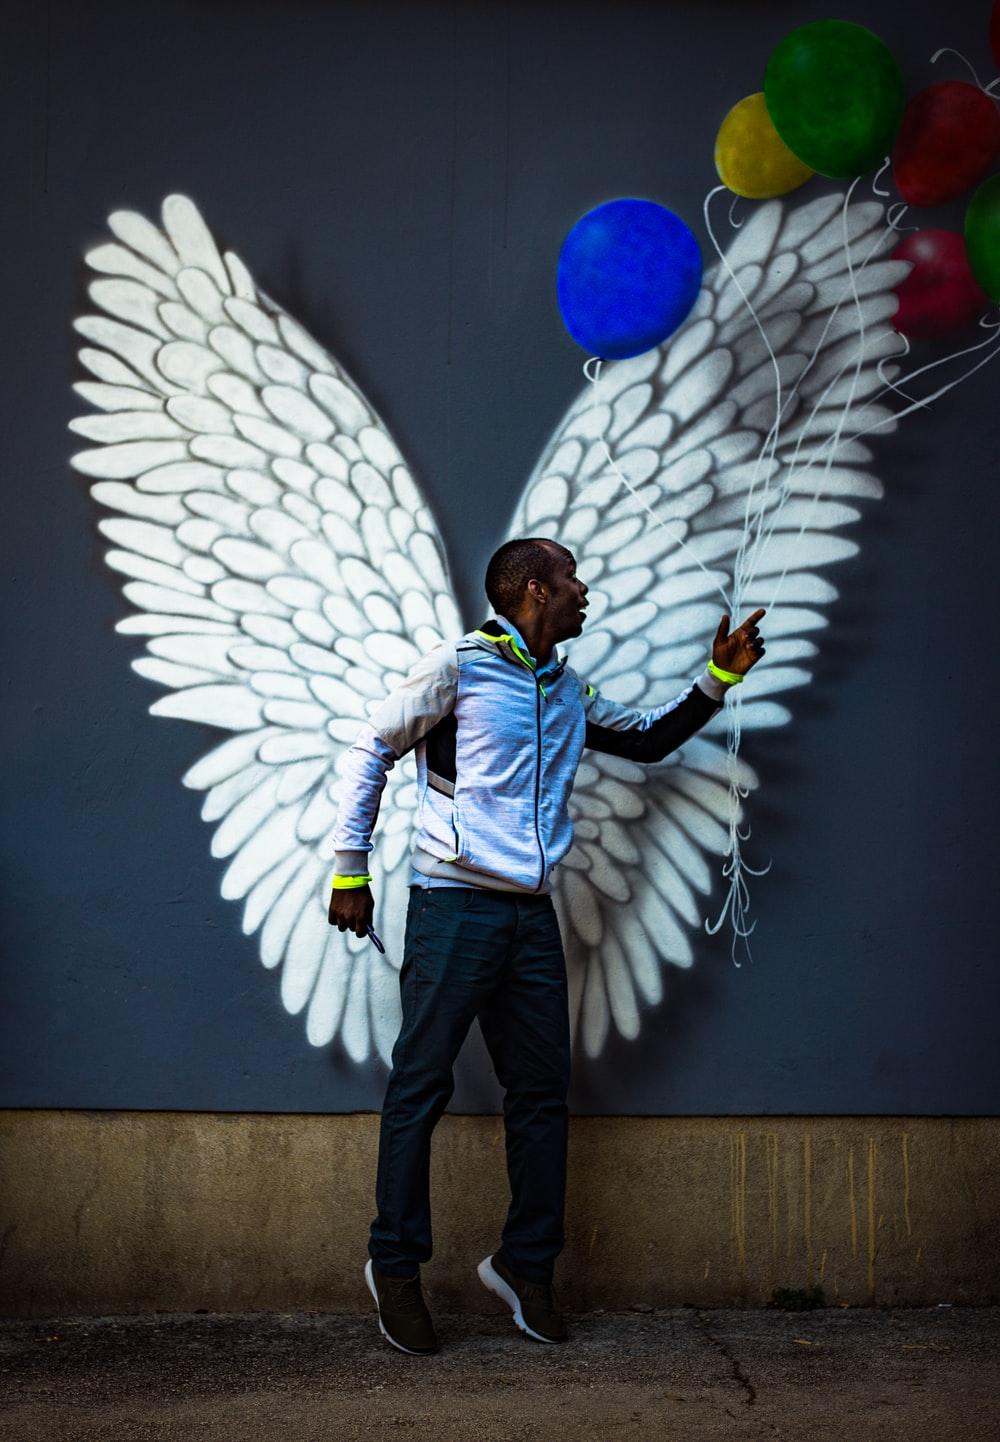 man standing in front of white wings and assorted-color balloons graffiti on wall